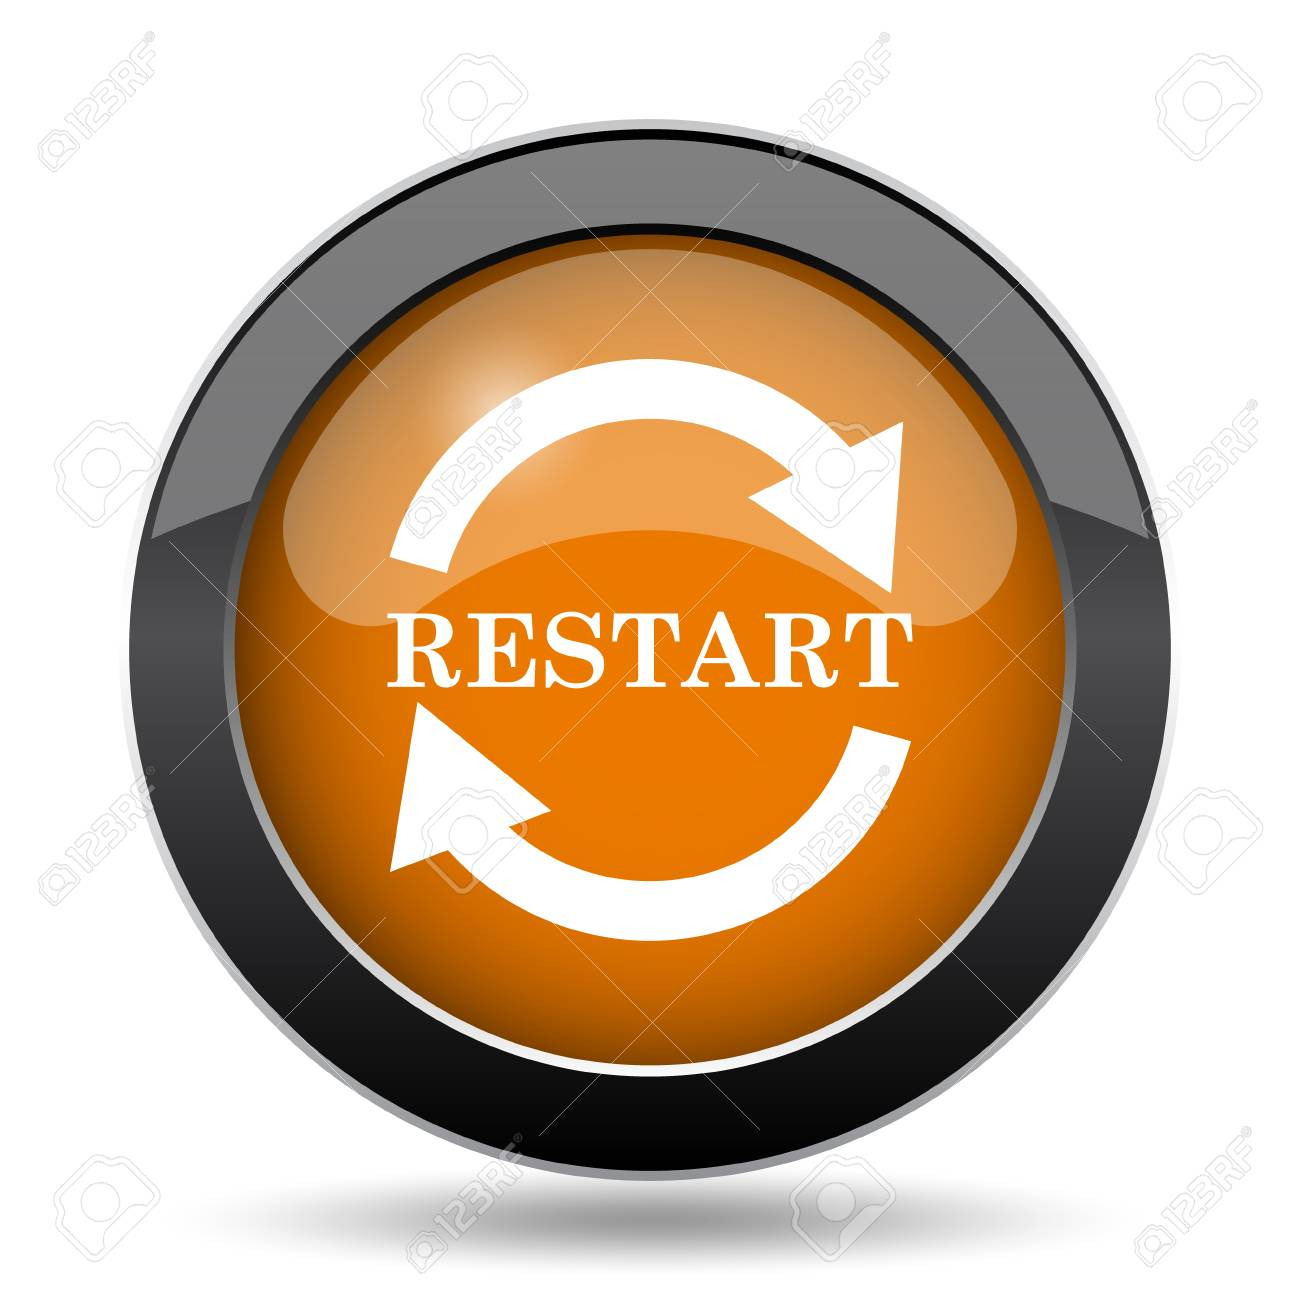 restart icon restart website button on white background stock photo picture and royalty free image image 78310379 restart icon restart website button on white background